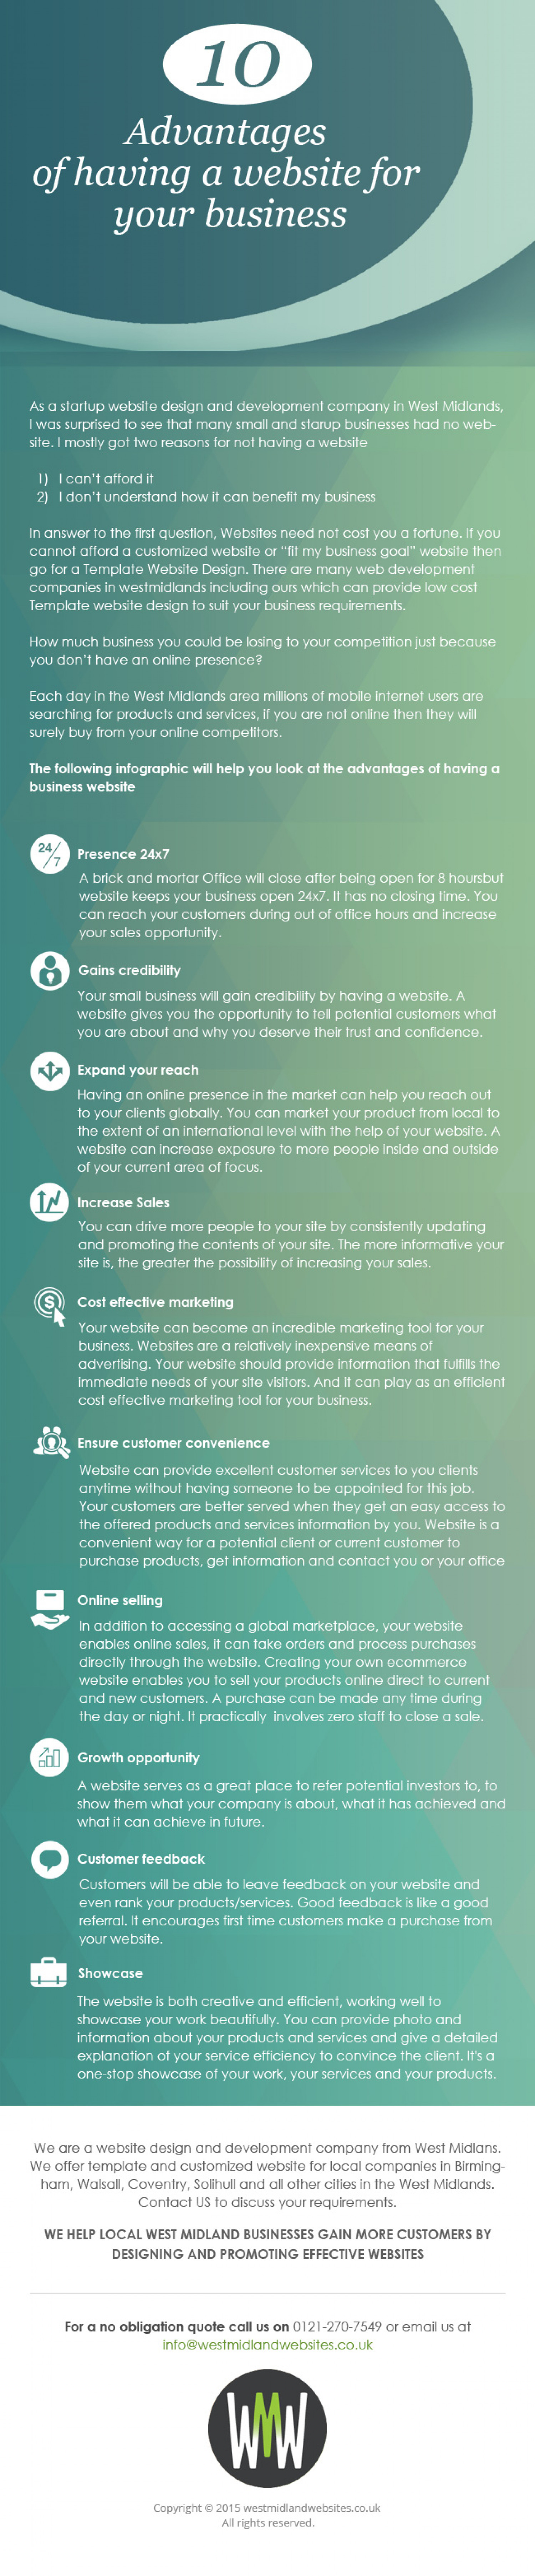 10 Advantages of Having a Website Design and Developed for Your Business Infographic